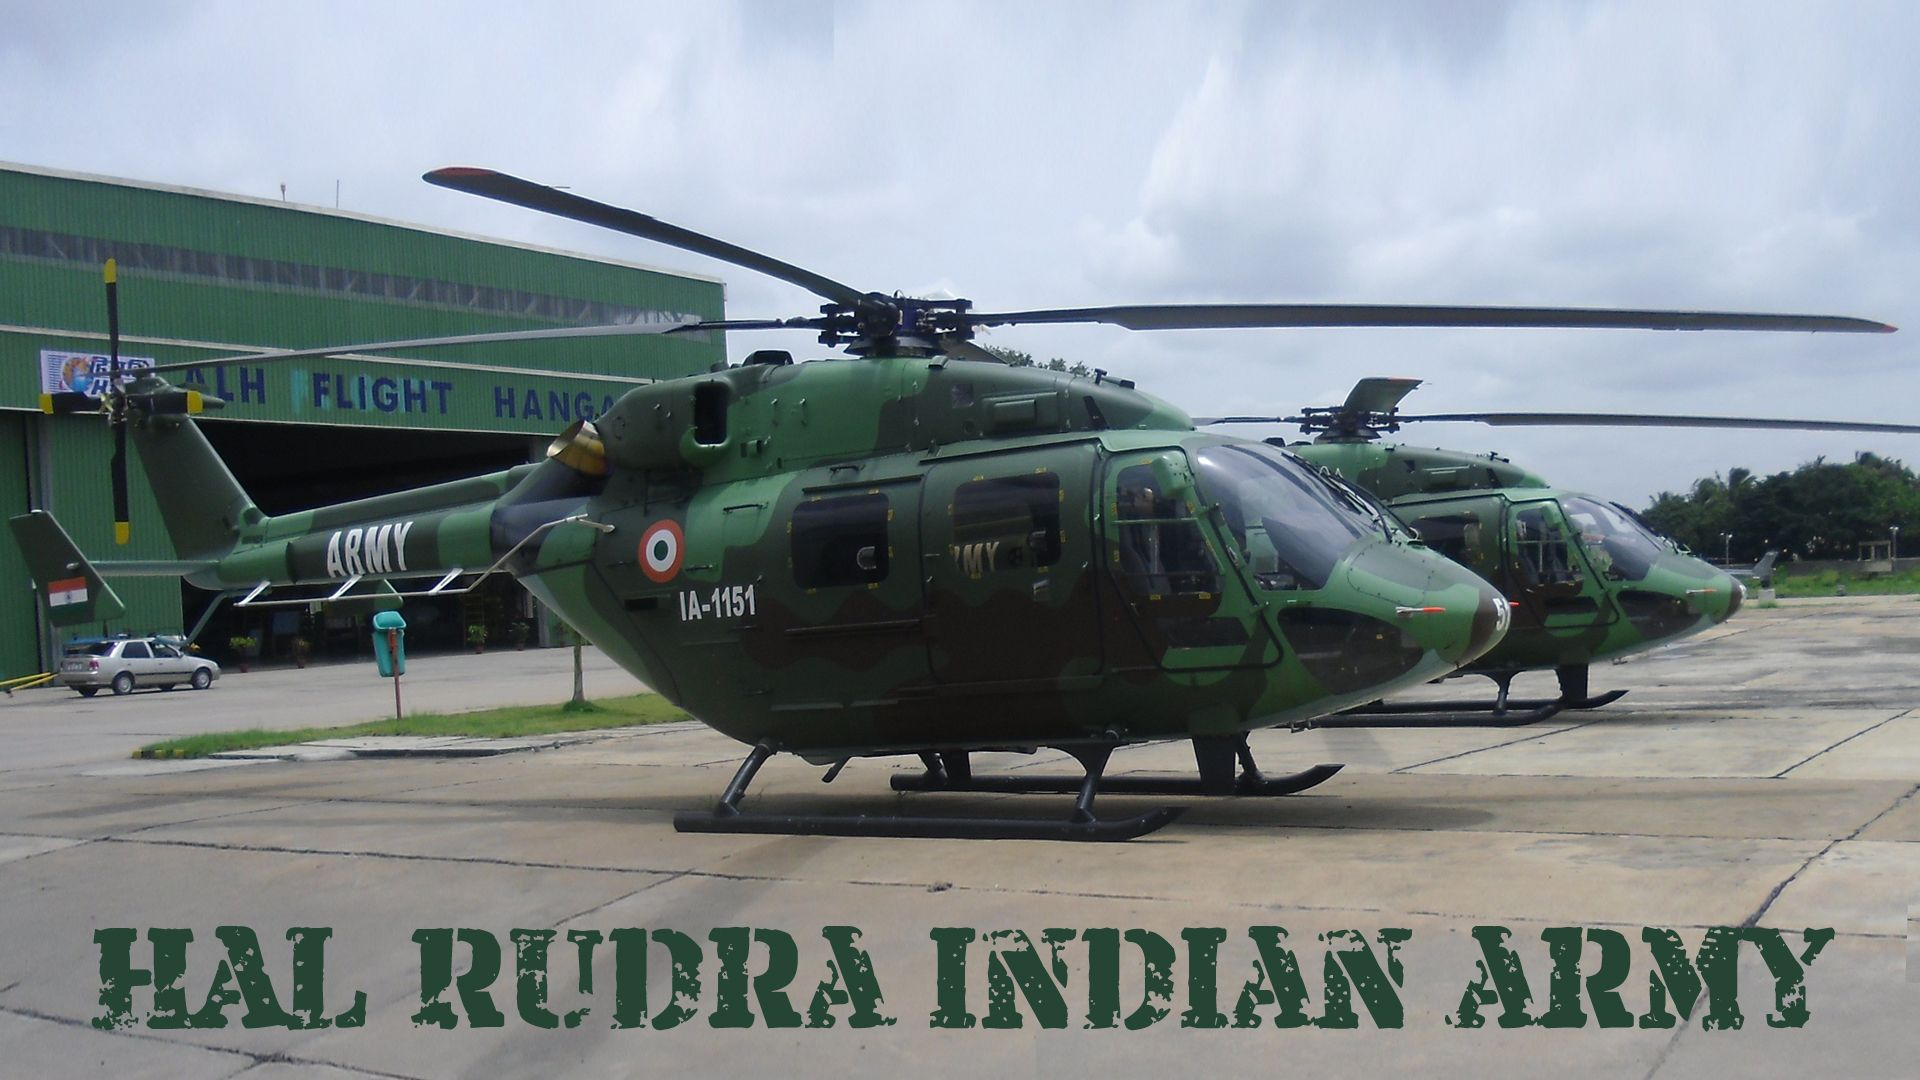 Indian Army Wallpaper For Mobile Phone - Helicopter Rudra Indian Army , HD Wallpaper & Backgrounds